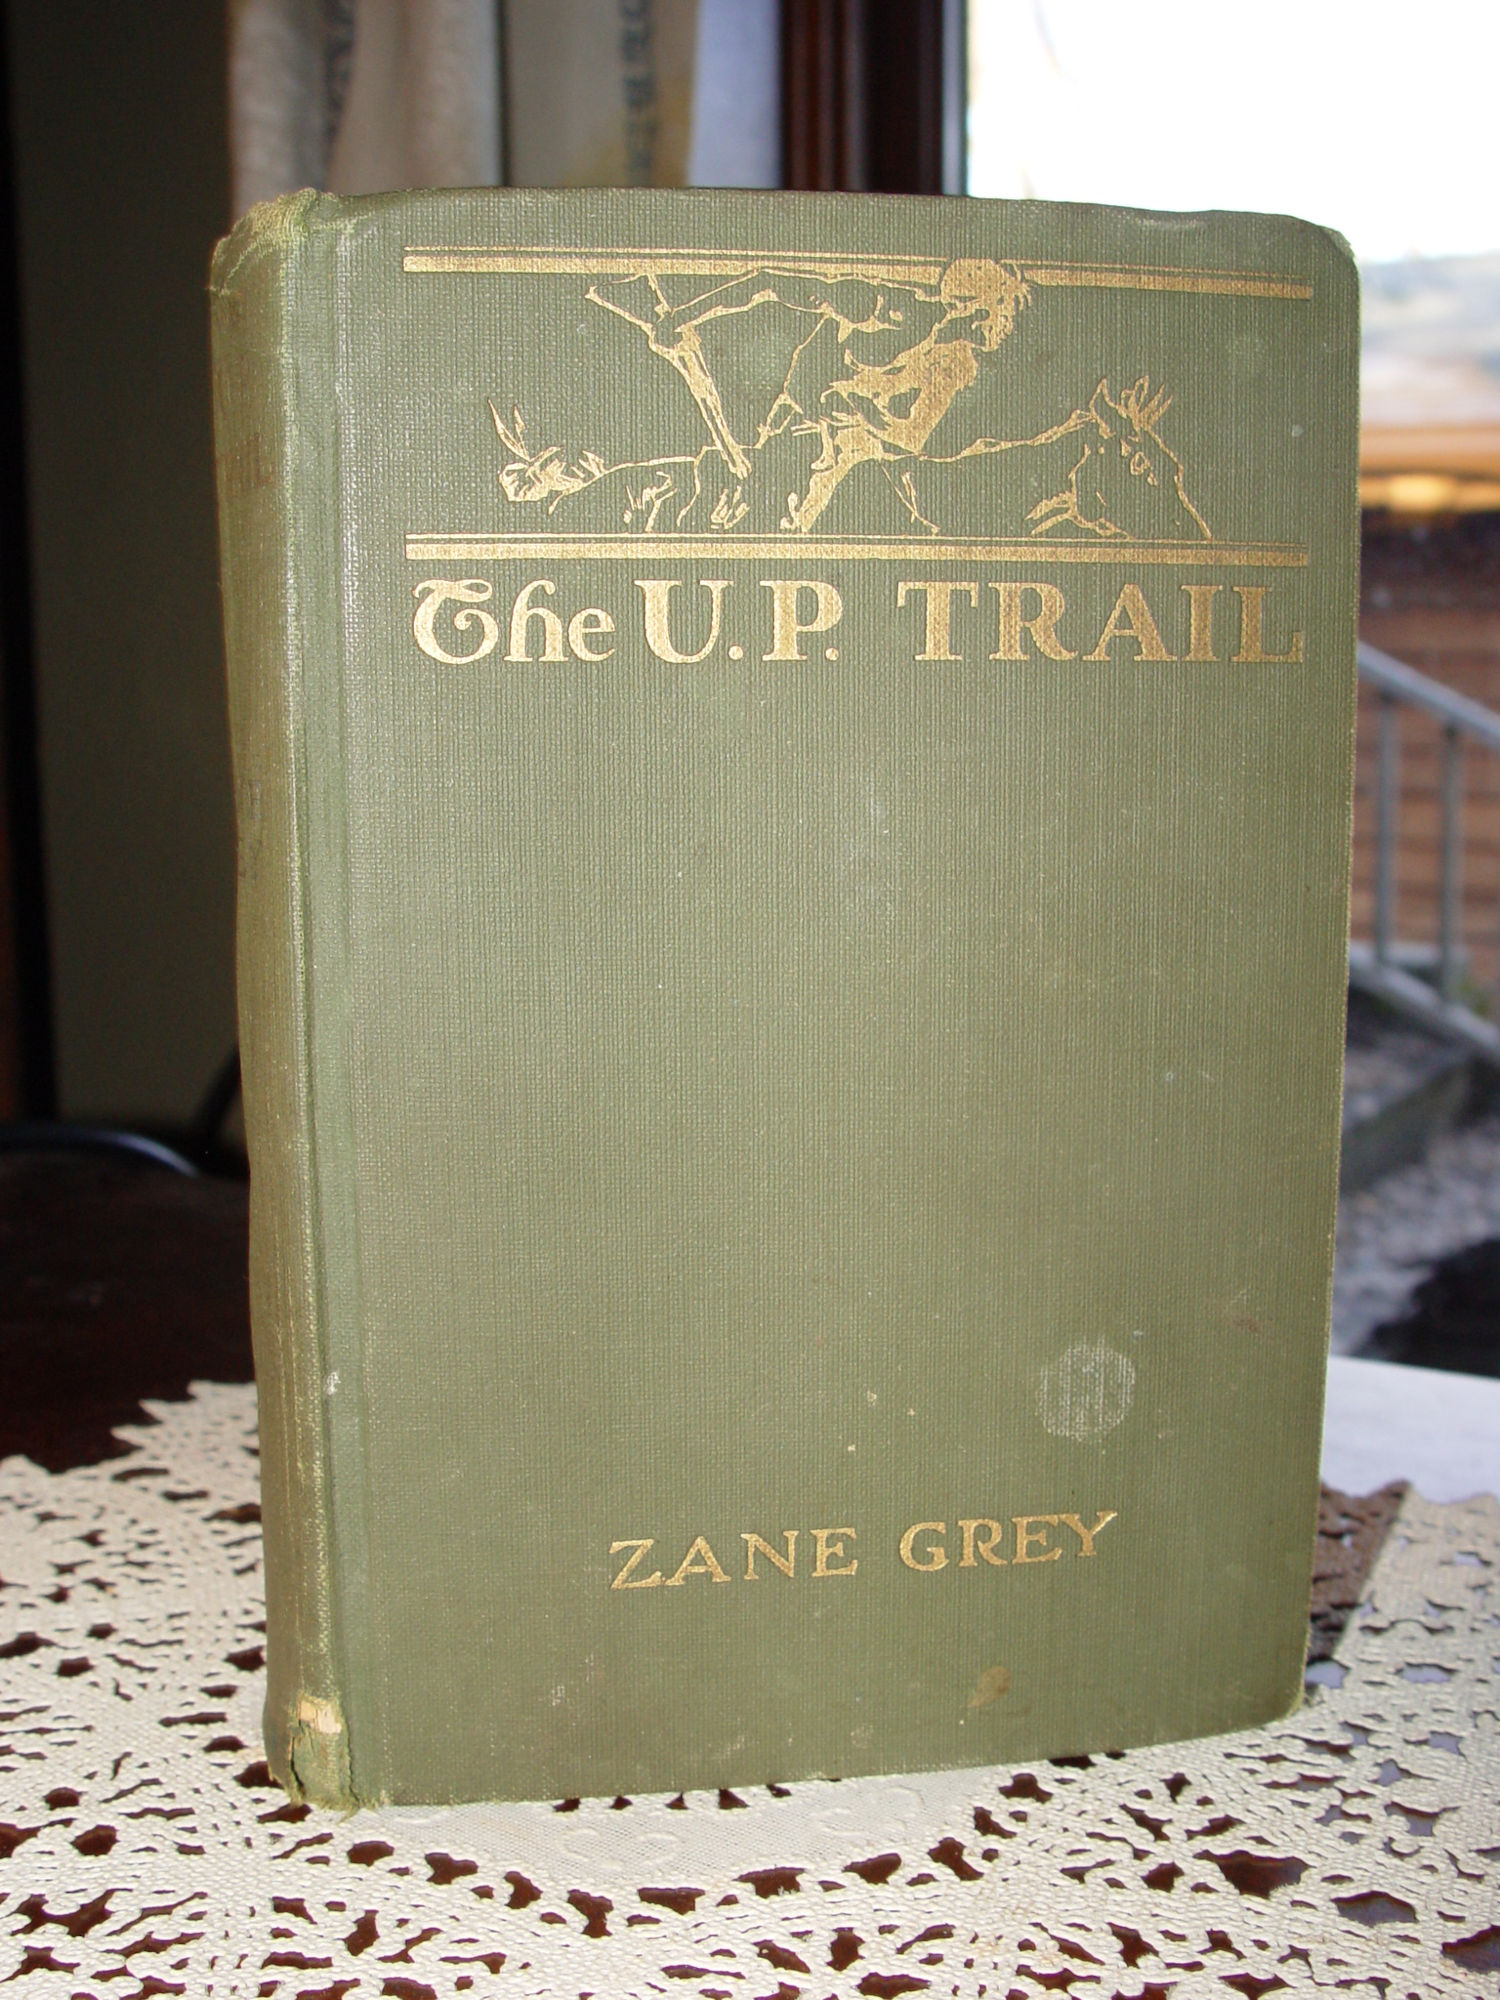 Stories of Early Minnesota                                         Hardcover by Solon J. Buck                                         Publisher: Macmillan, NY (1929)